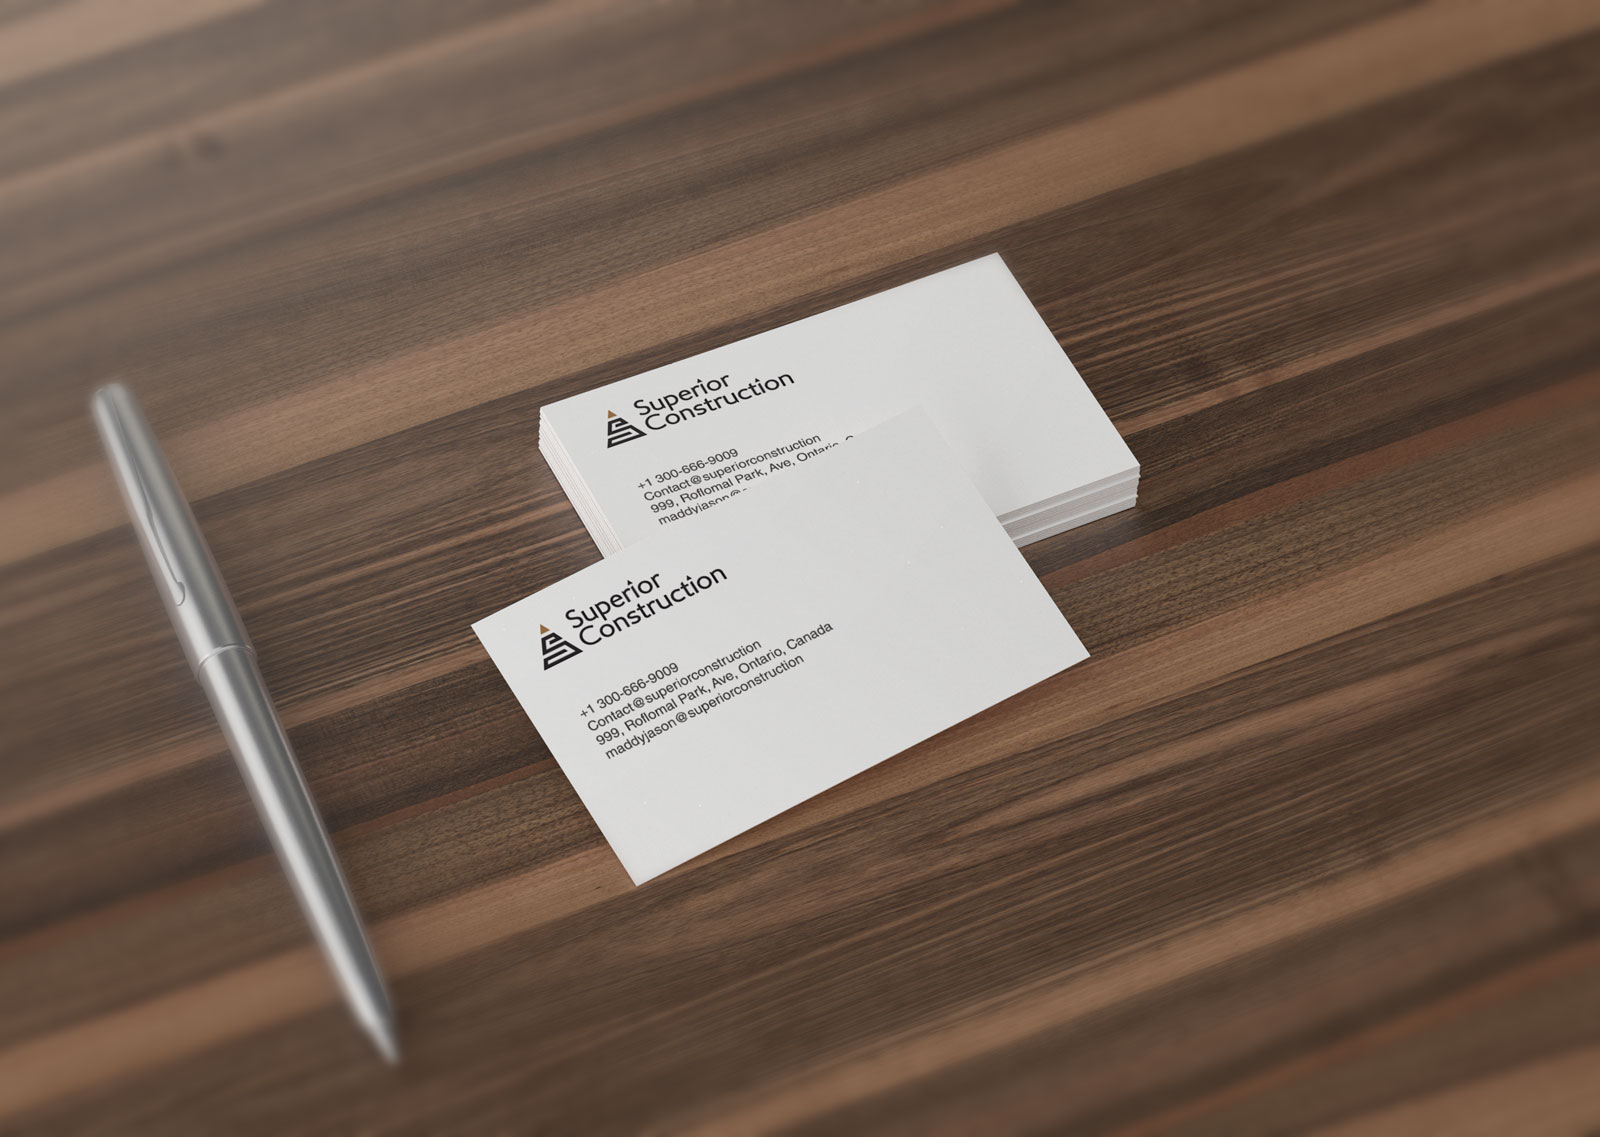 Free-Premium-Business-Card-Mockup-PSD-File-2